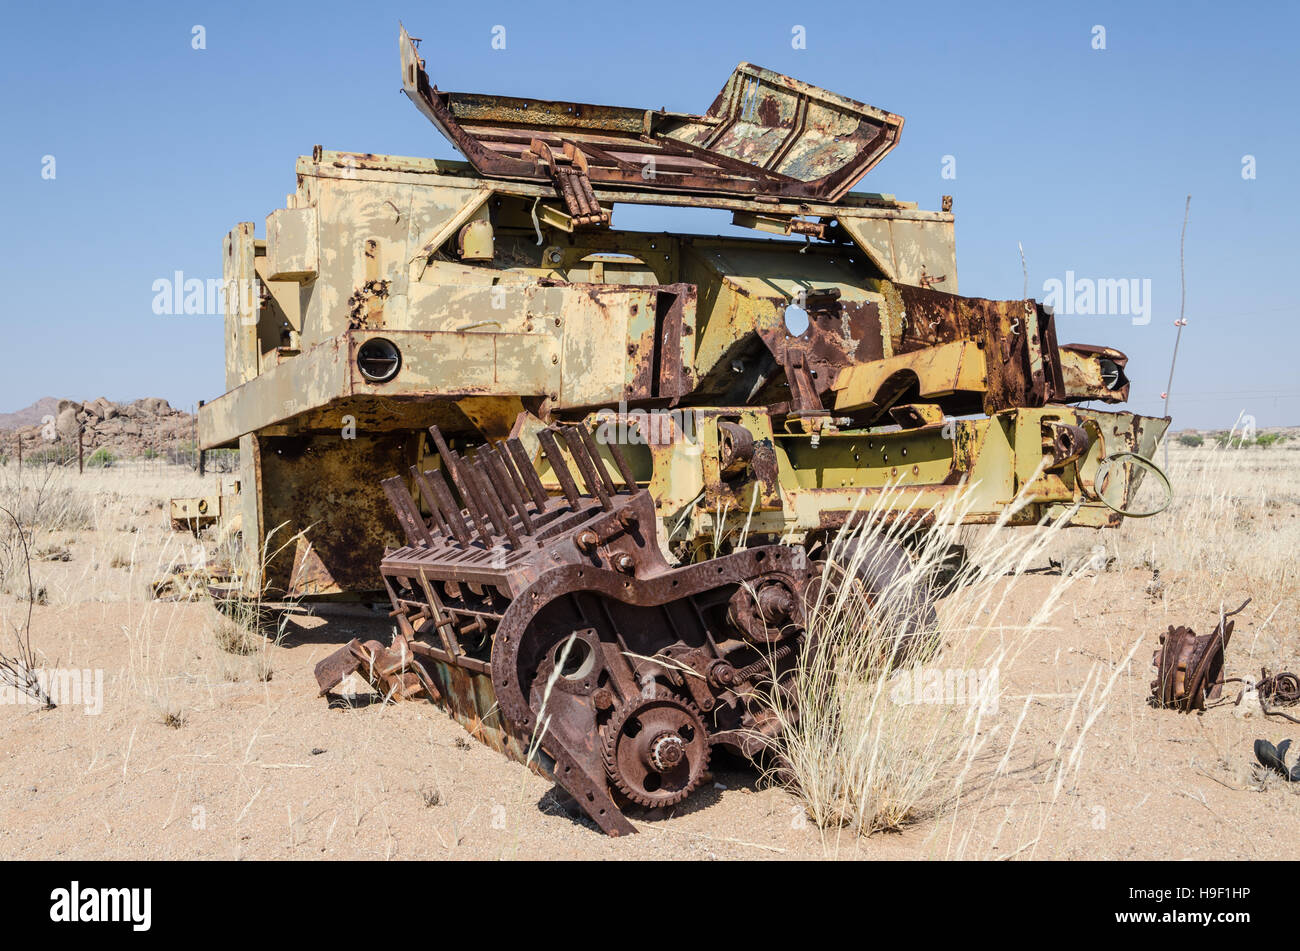 Abandoned harvester rusting away deep in the Namib Desert of Angola - Stock Image